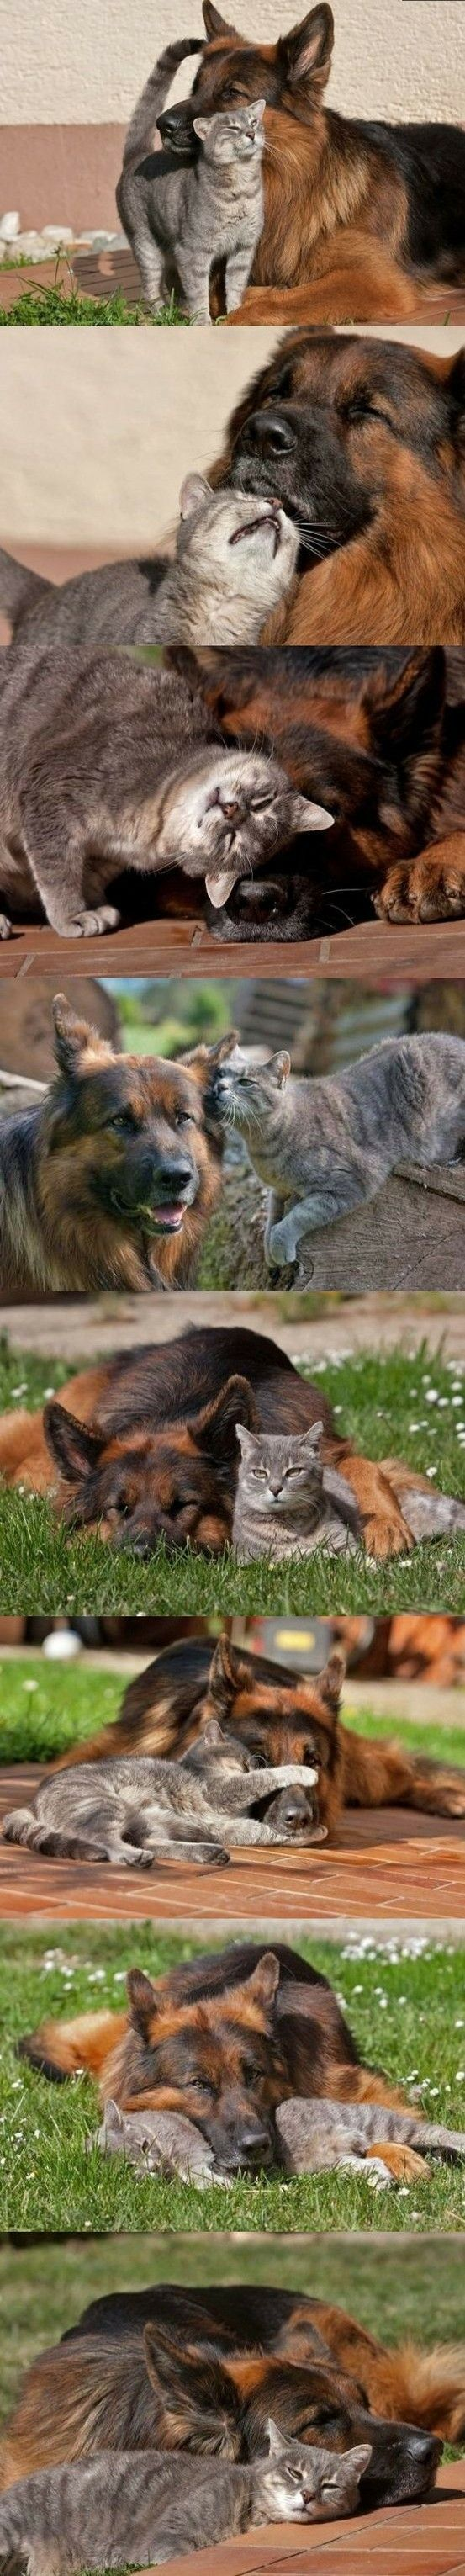 best cute images on pinterest cutest animals fluffy pets